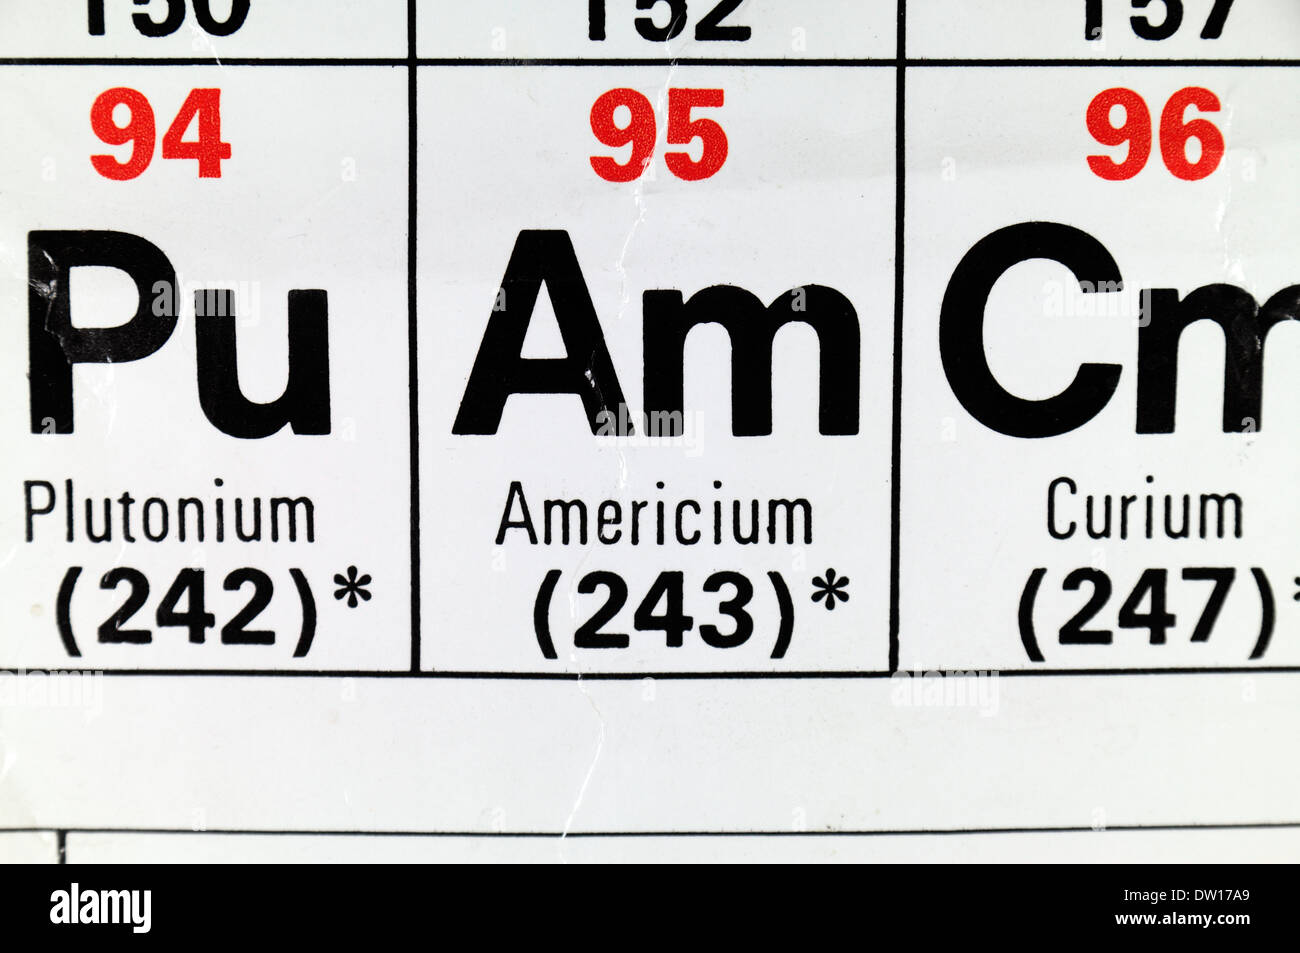 Americium am as it appears on the periodic table stock photo americium am as it appears on the periodic table gamestrikefo Choice Image